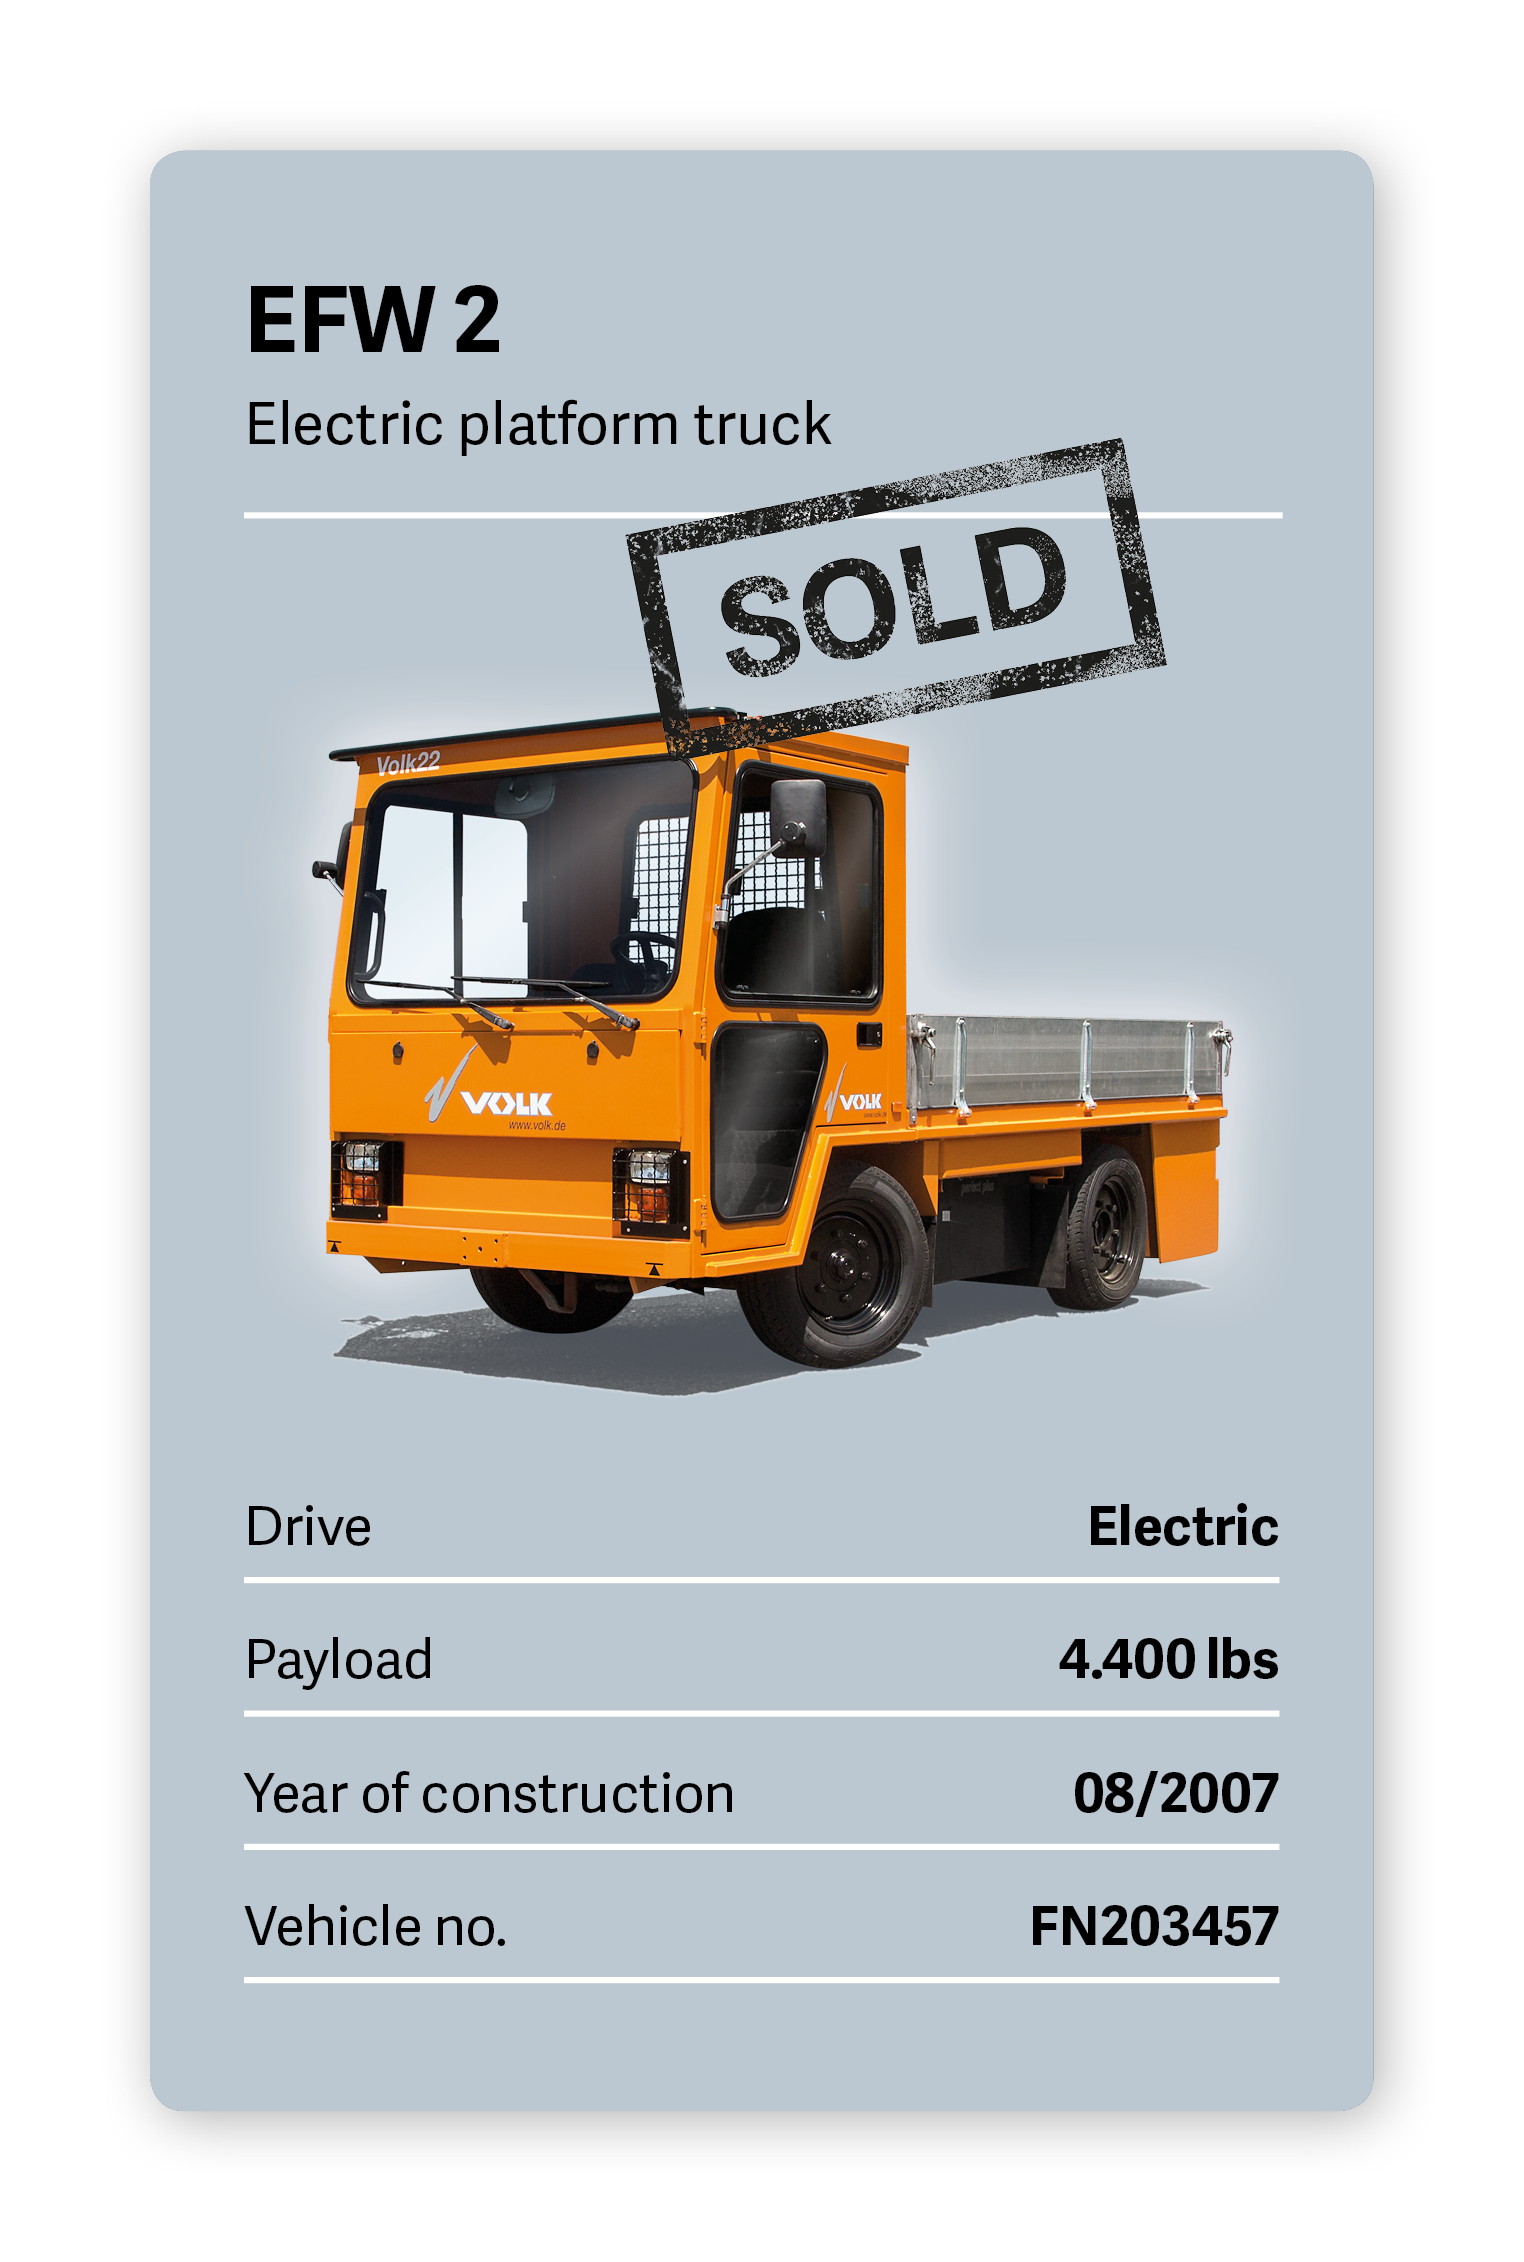 VOLK Electric platform truck EFW 2 Used